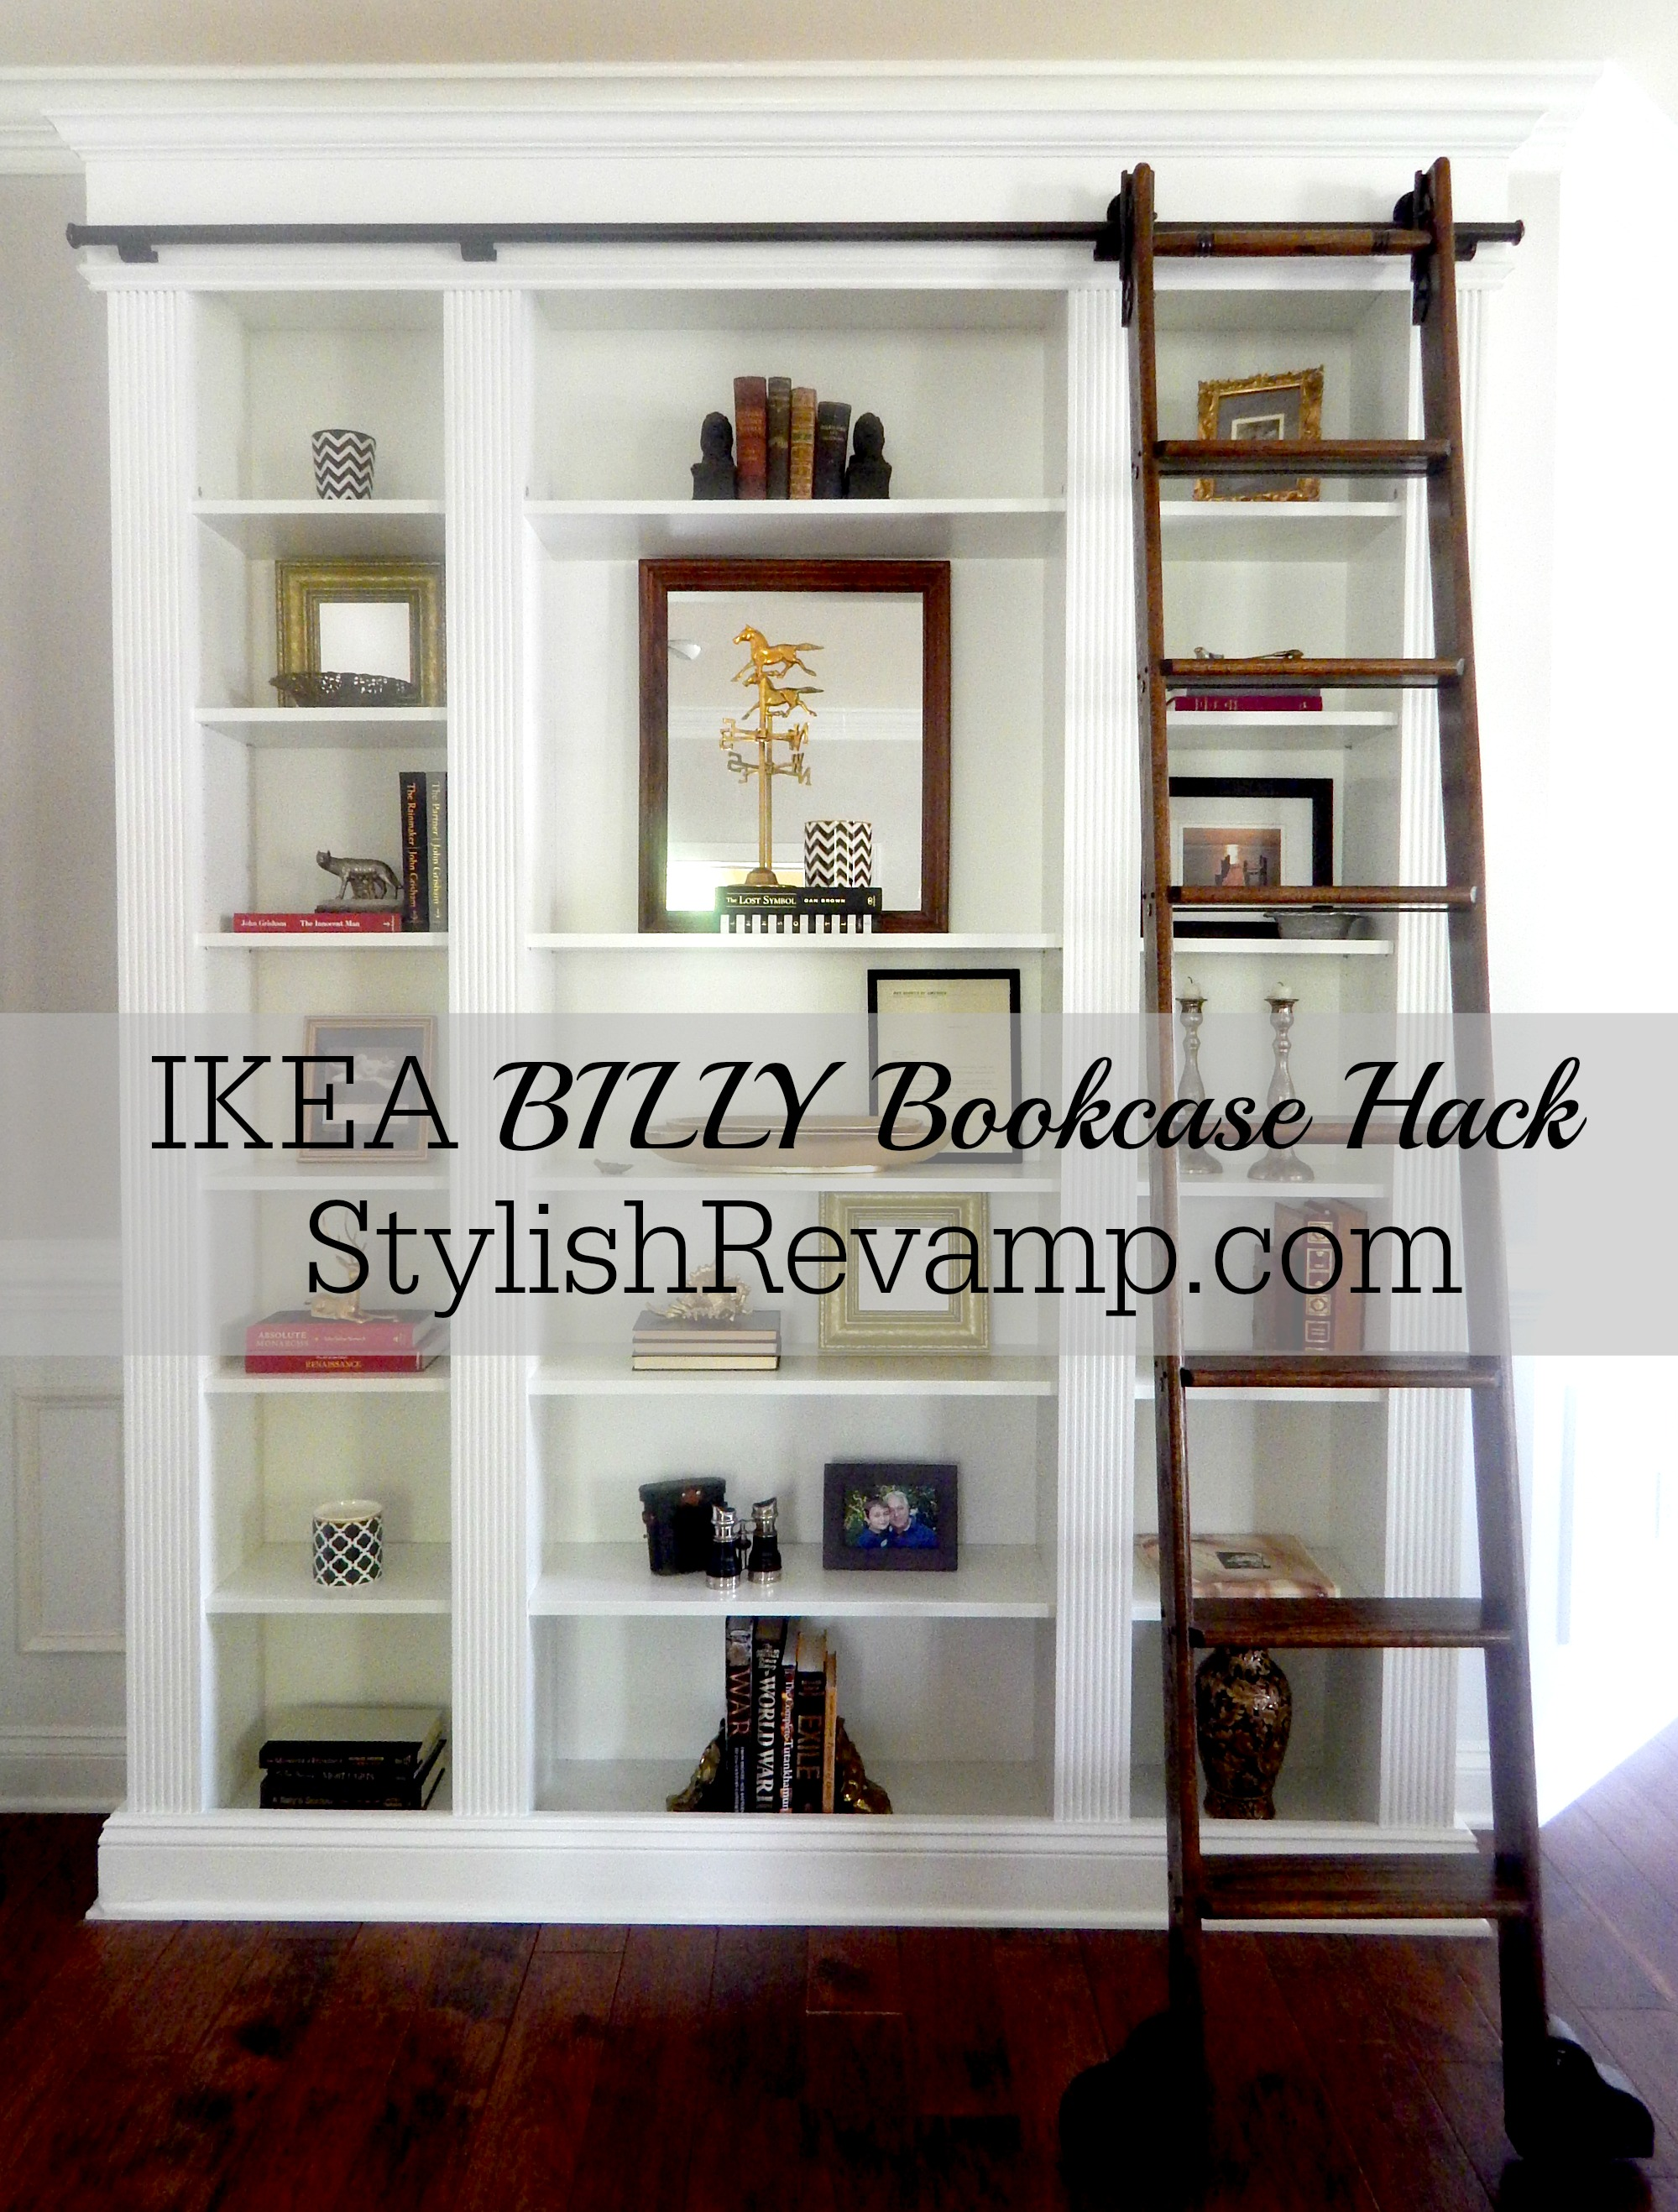 IKEA BILLY Bookcase Hack 1